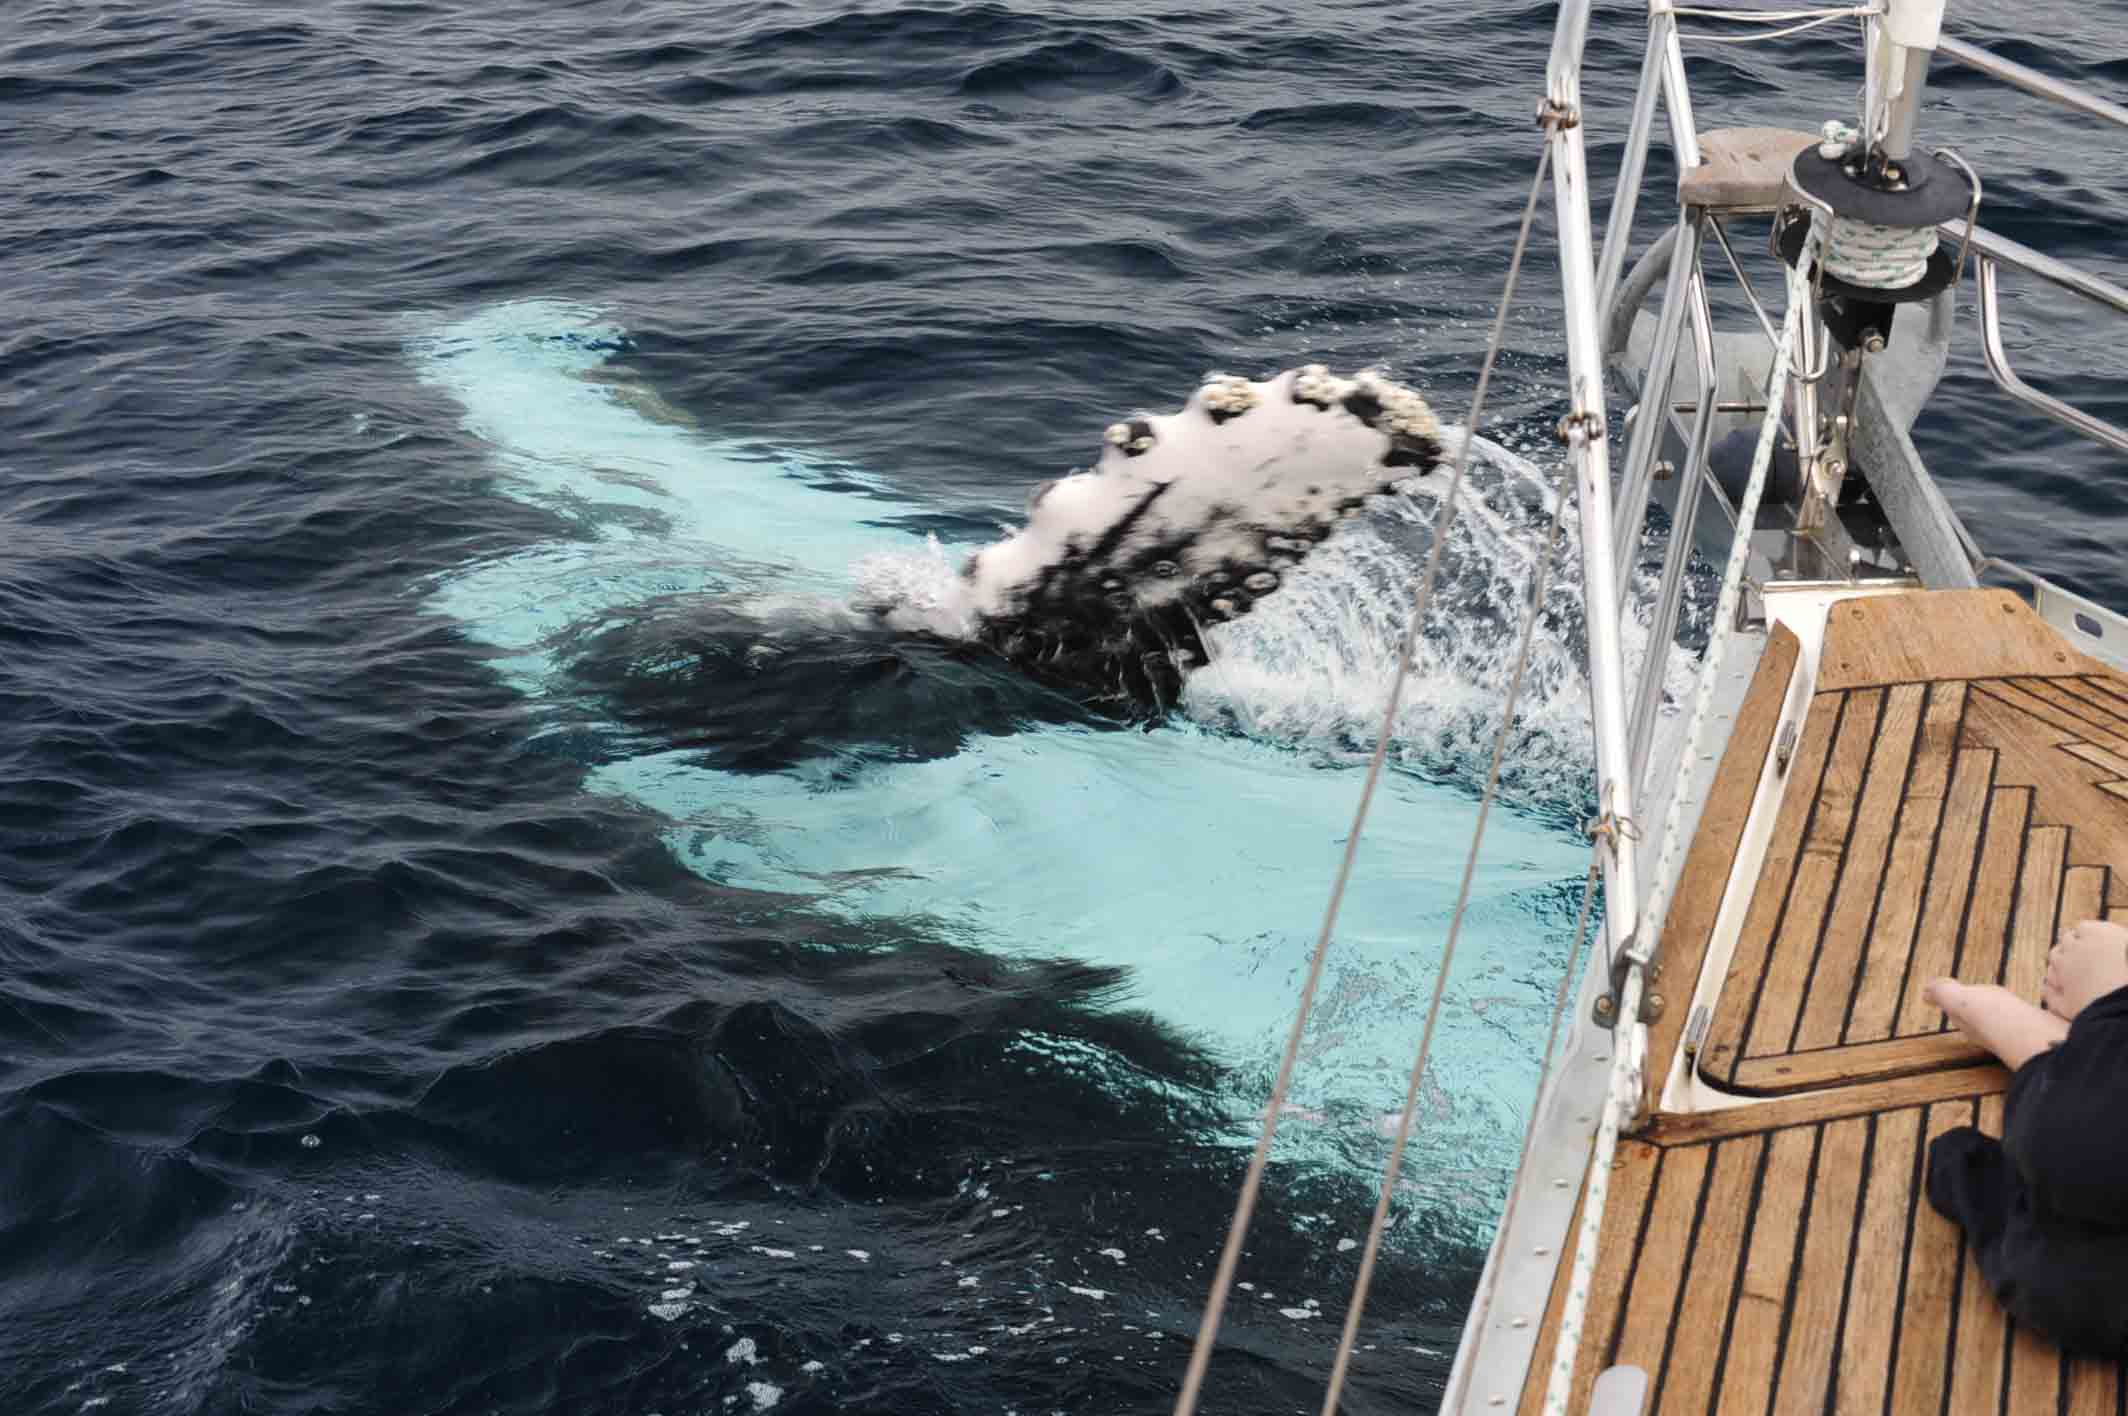 Whales play around the 'eau de vie' | Whale watching three ways